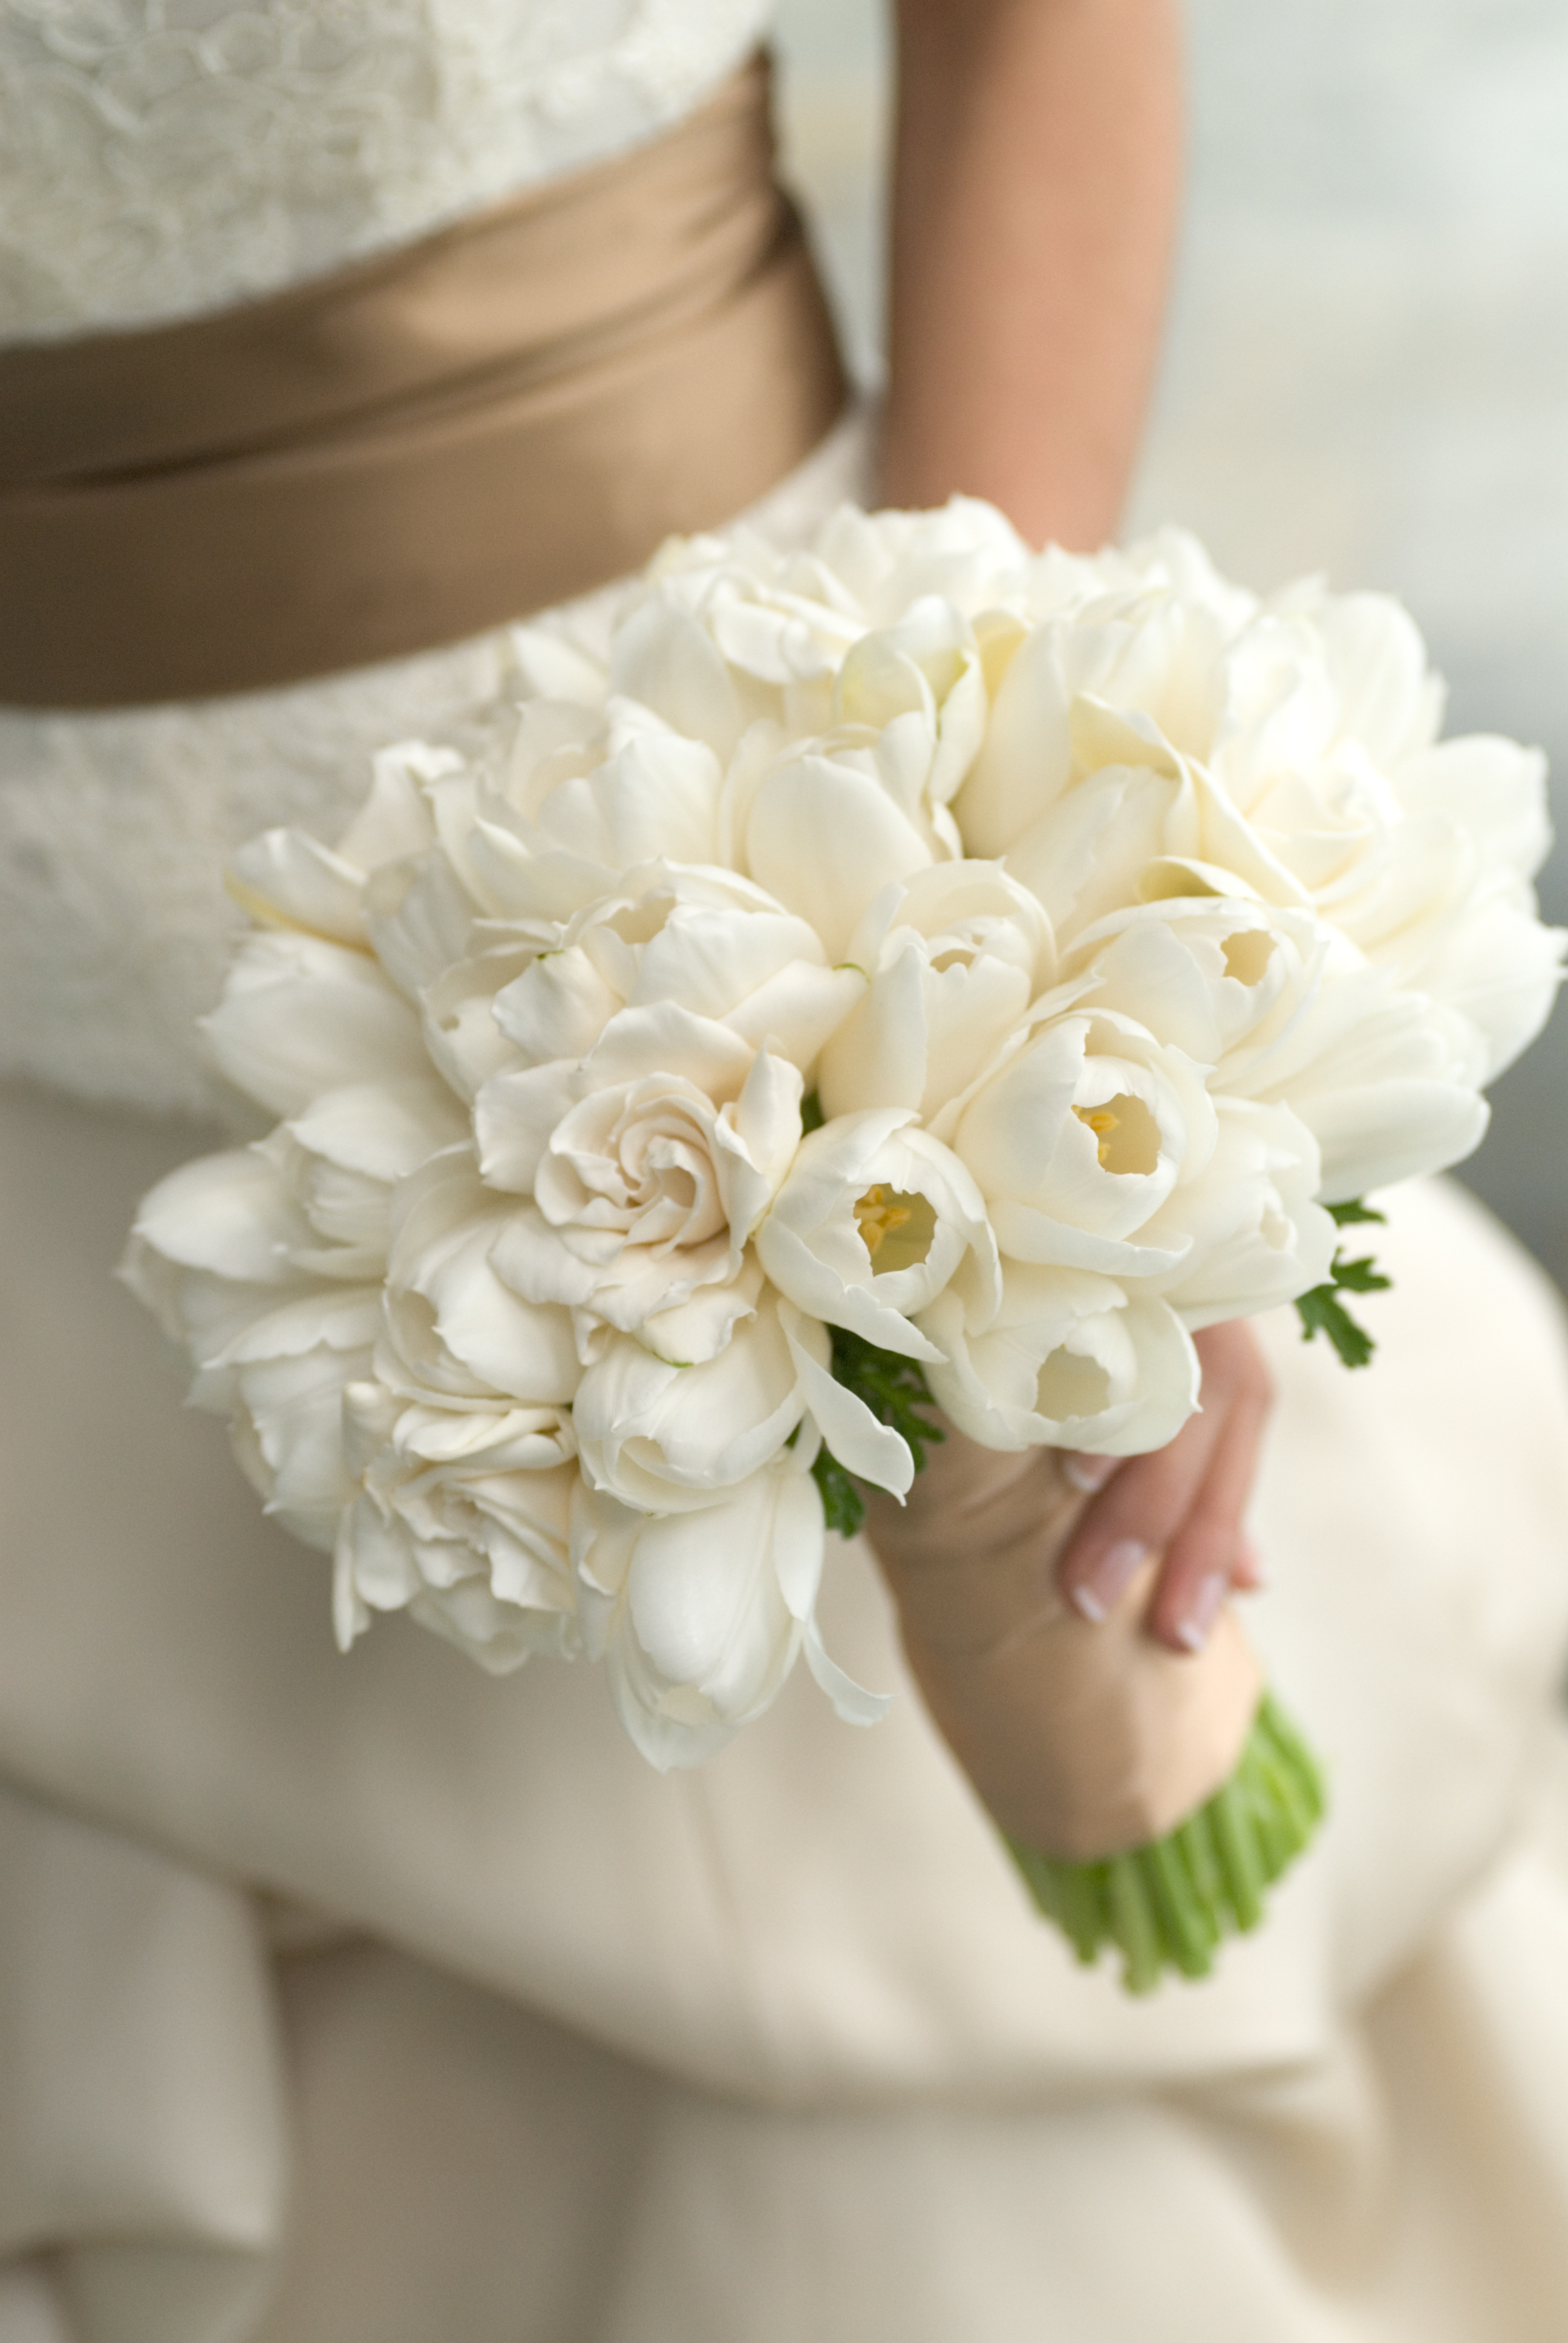 Flowers & Decor, Bride Bouquets, Flowers, Bouquet, Bridal, Erin adams events